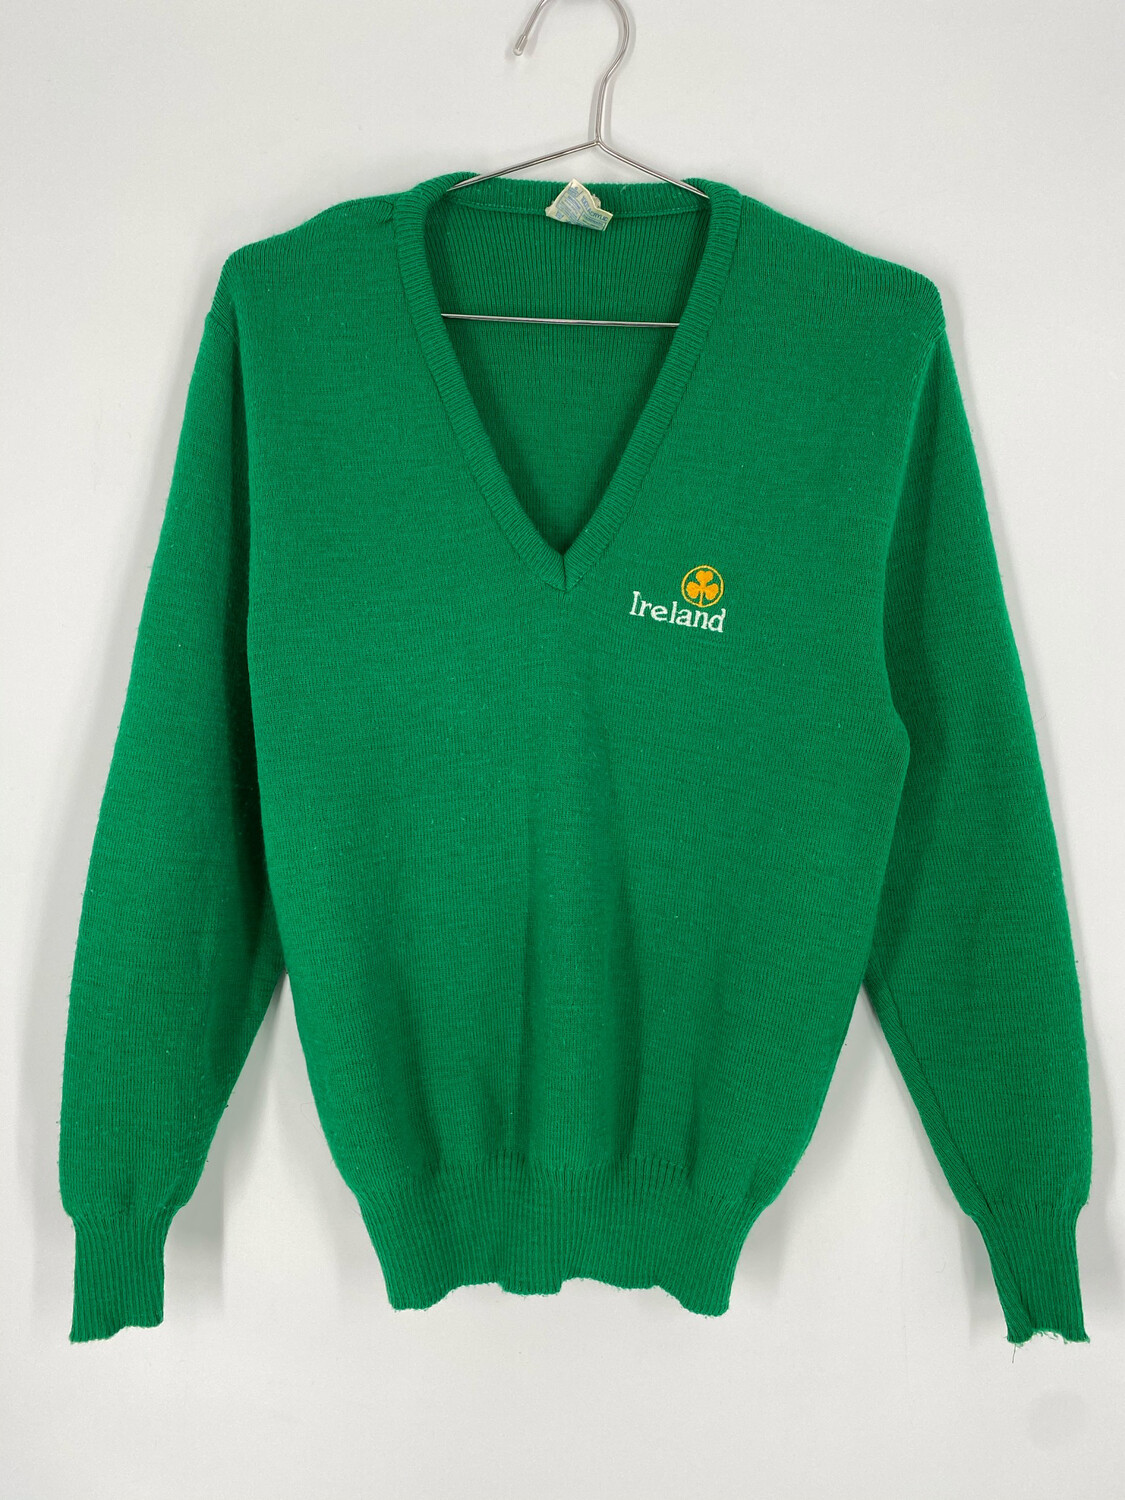 Vintage Ireland V-Neck Green Sweater Size S